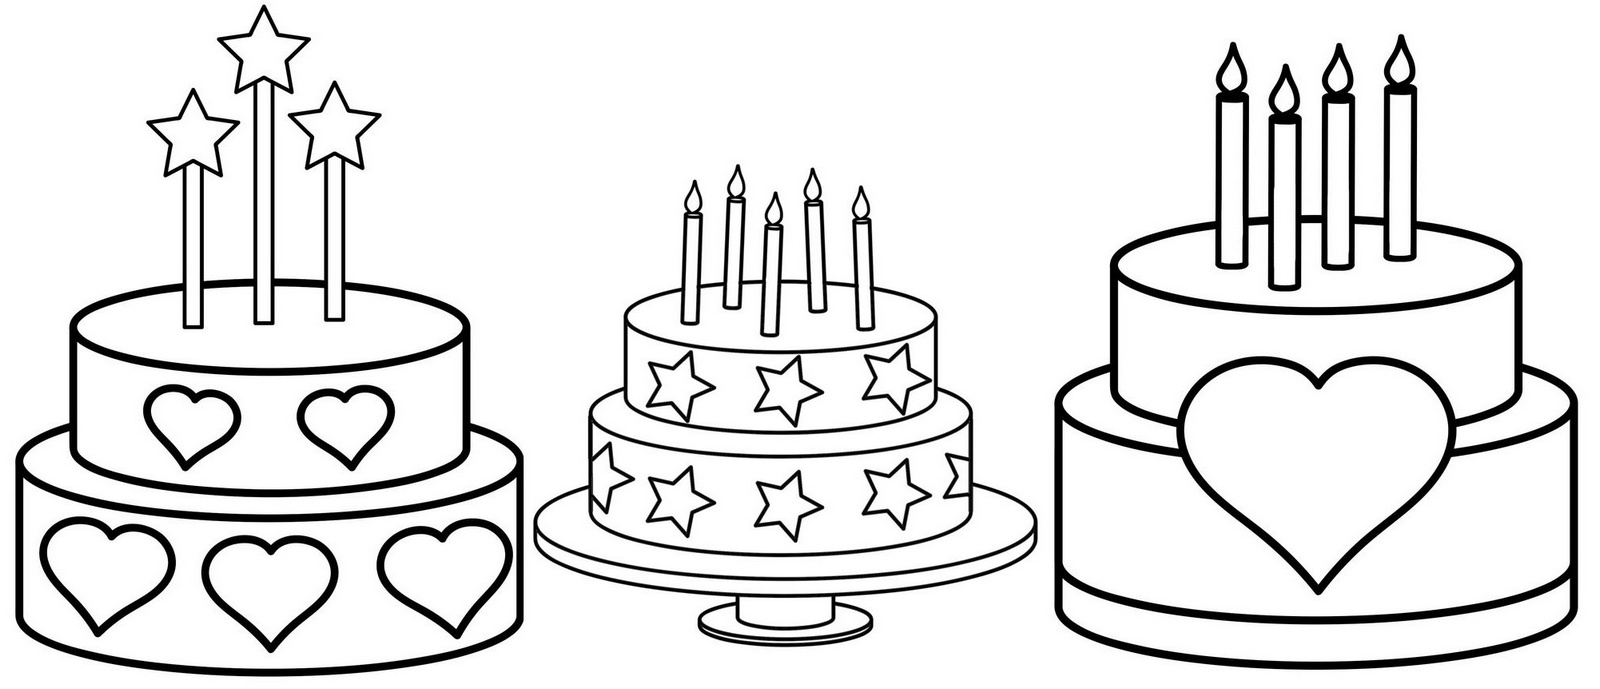 birthday cake to color birthday cake coloring pages to download and print for free cake color to birthday